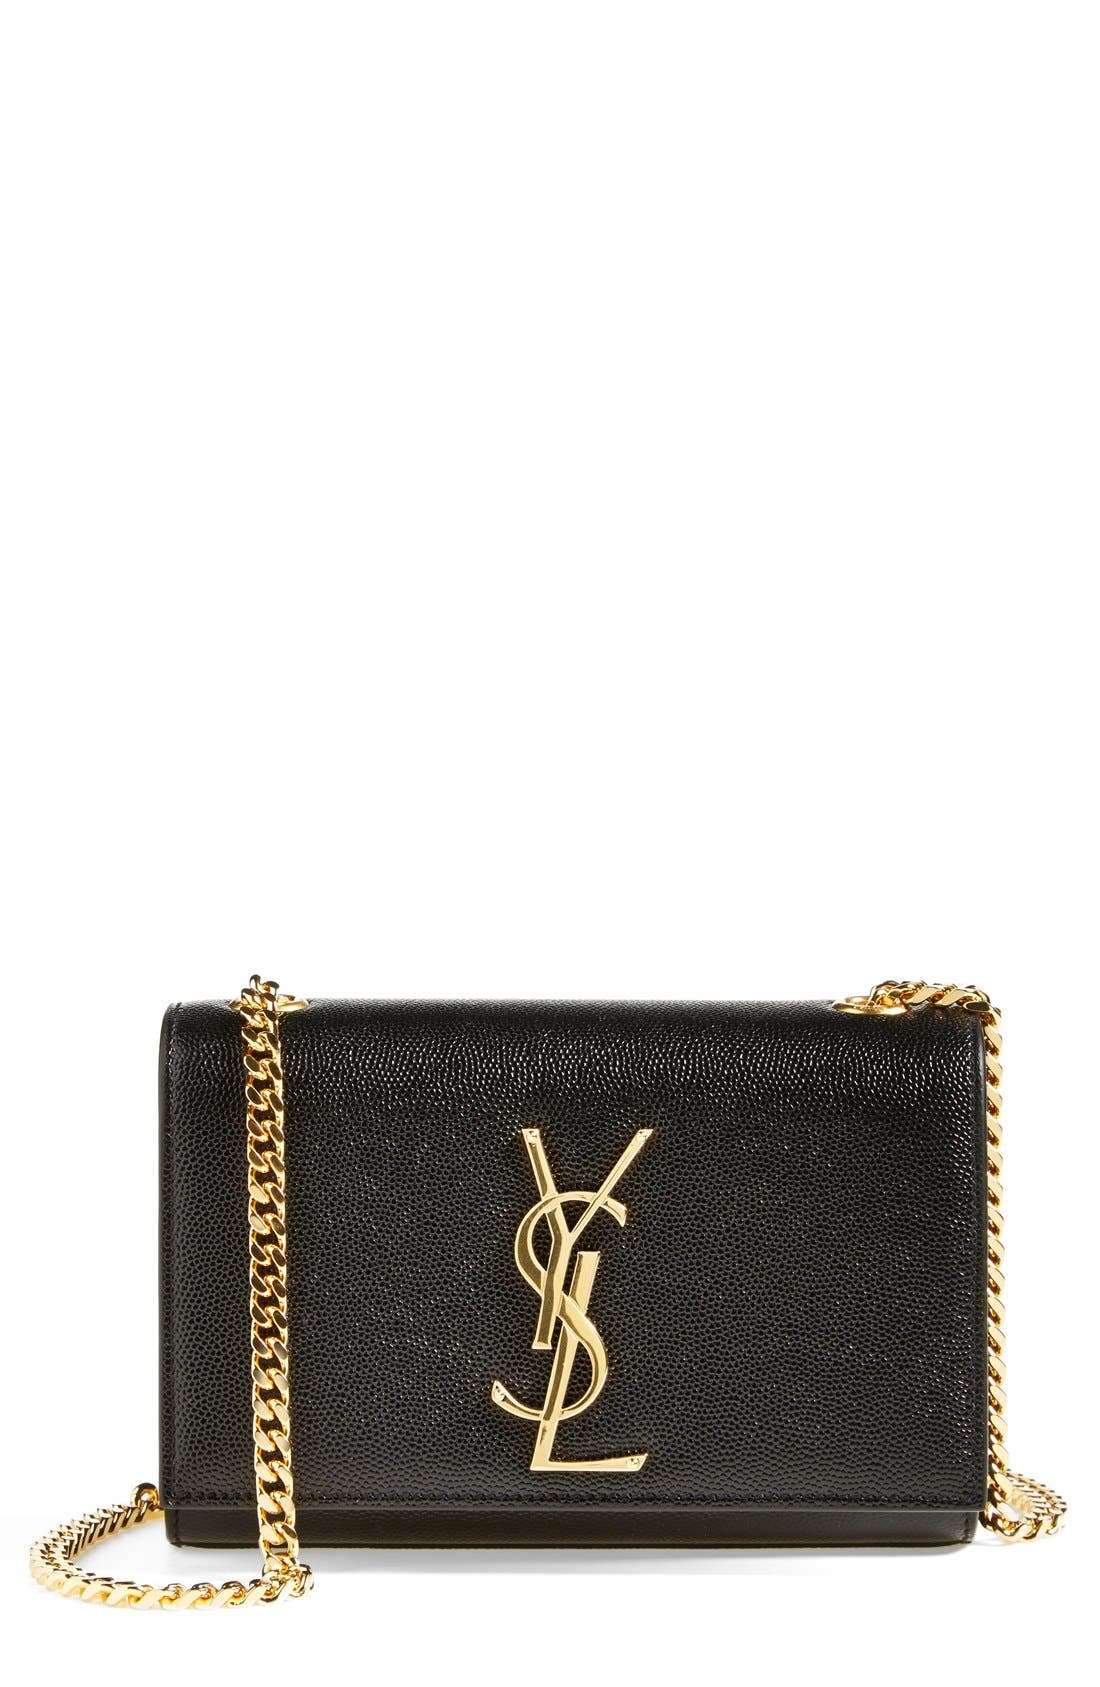 Small Kate Chain Crossbody Bag,                        Main,                         color, NOIR/ GOLD HDWR